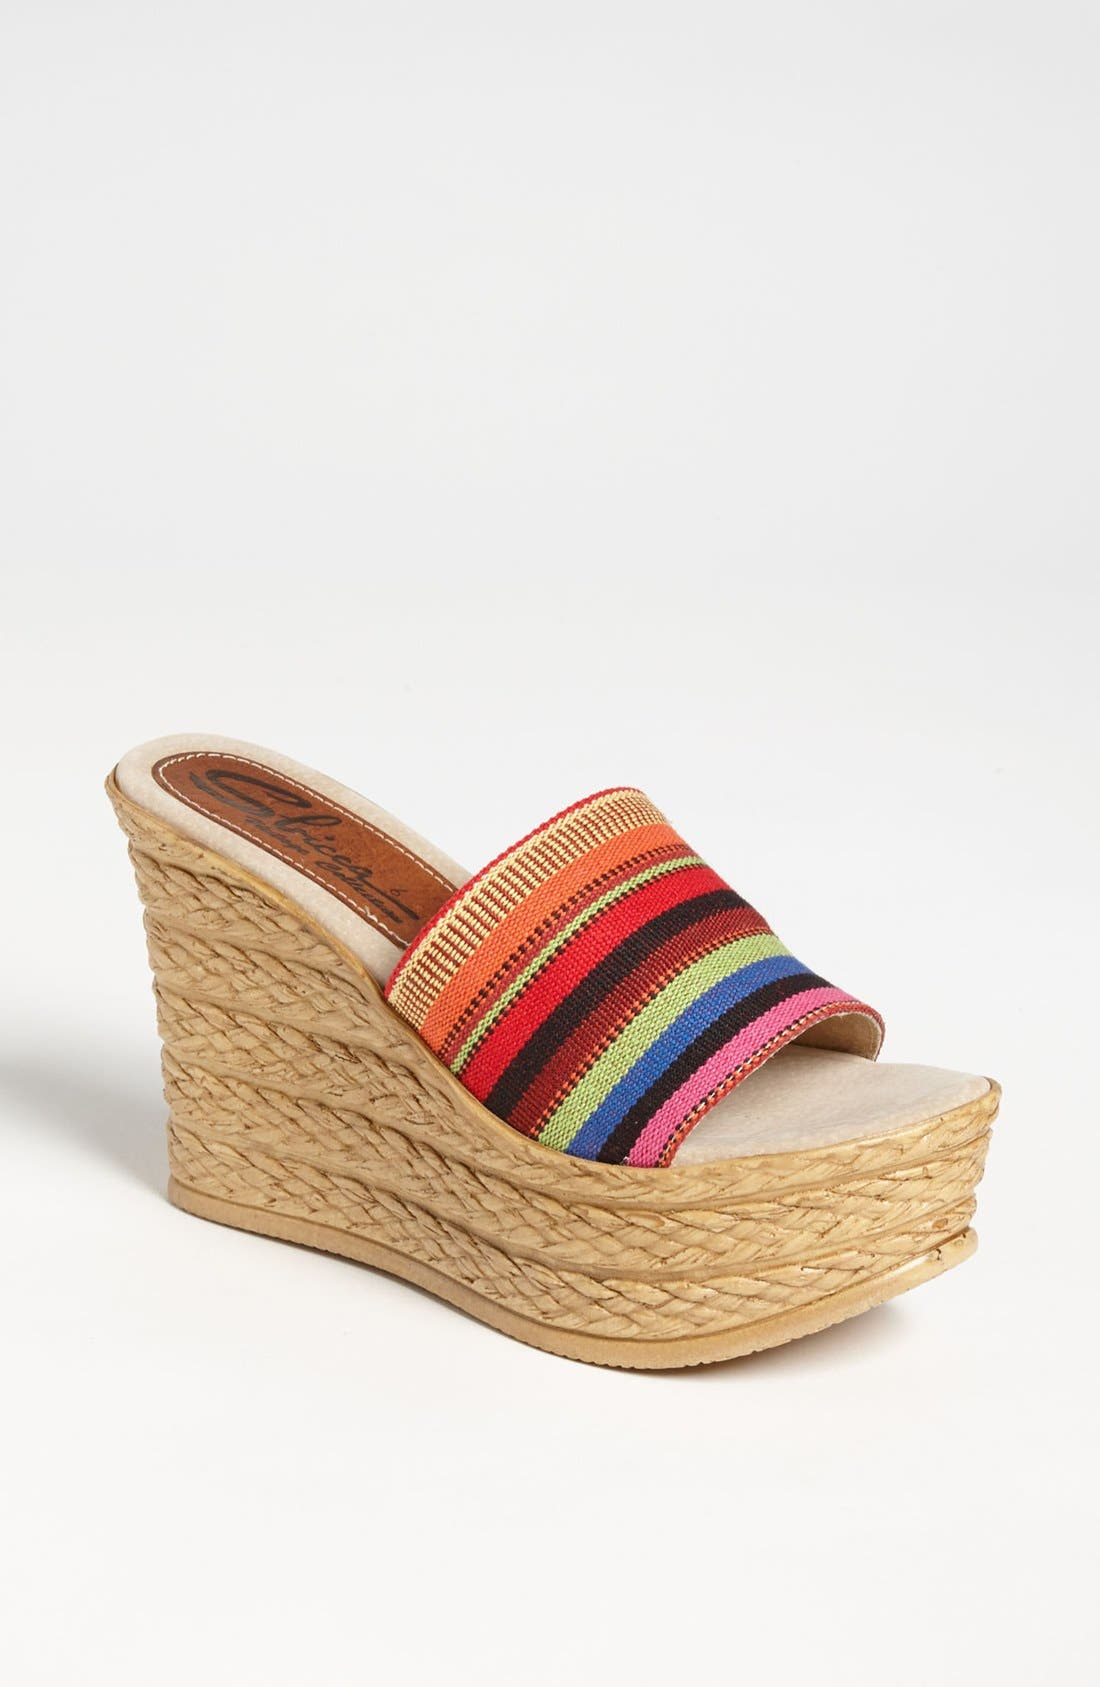 Main Image - Sbicca 'Onelove' Wedge Sandal